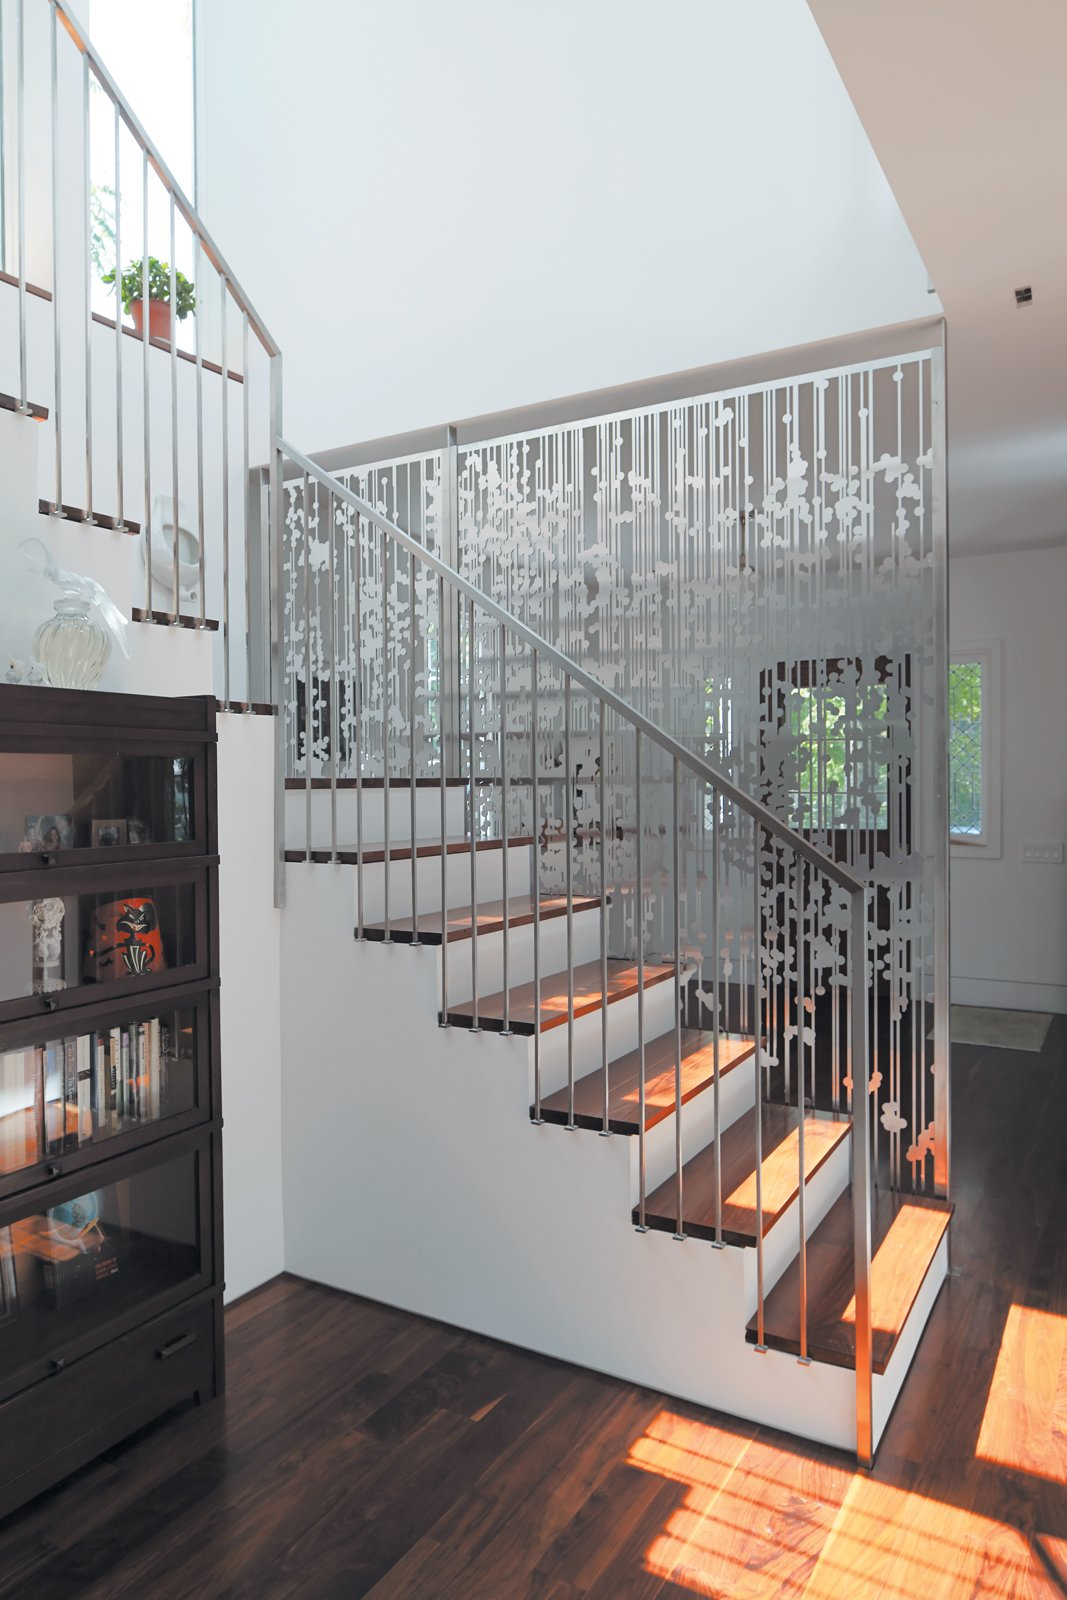 Staircase and Wood Tread Andrew Magnes's hanging screen composed of aluminum circles and lines, cut with a CNC water jet, separates the entry from the staircase and rear kitchen area.  Photo 9 of 11 in An 1850 Schoolhouse in Milford, Pennsylvania